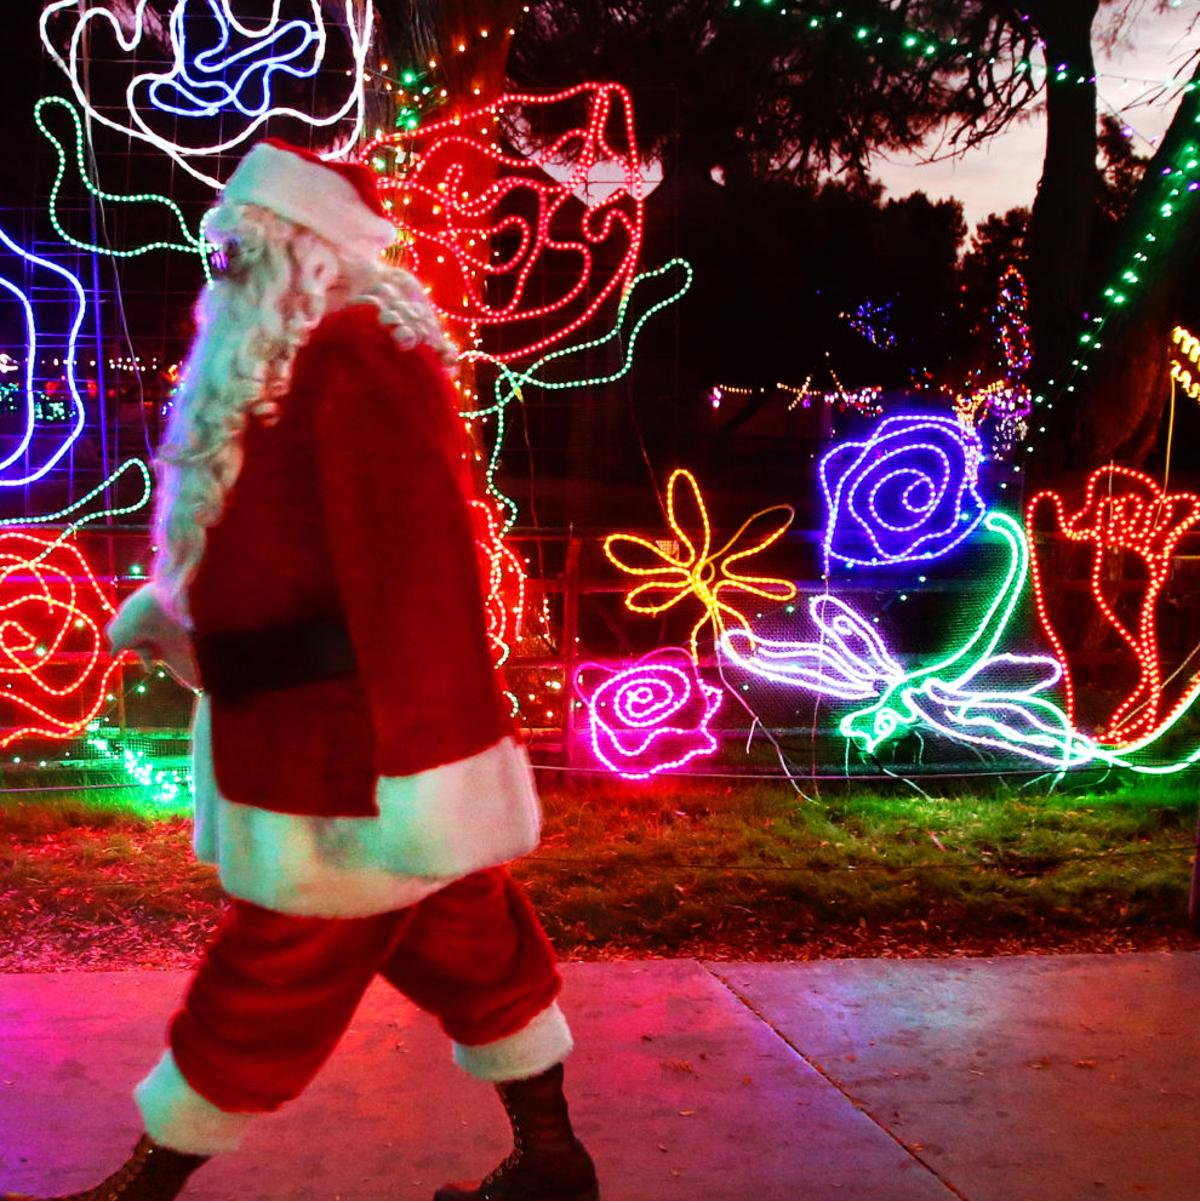 Christmas Things To Do.An Updated List Of All The Christmas Things To Do In Tucson